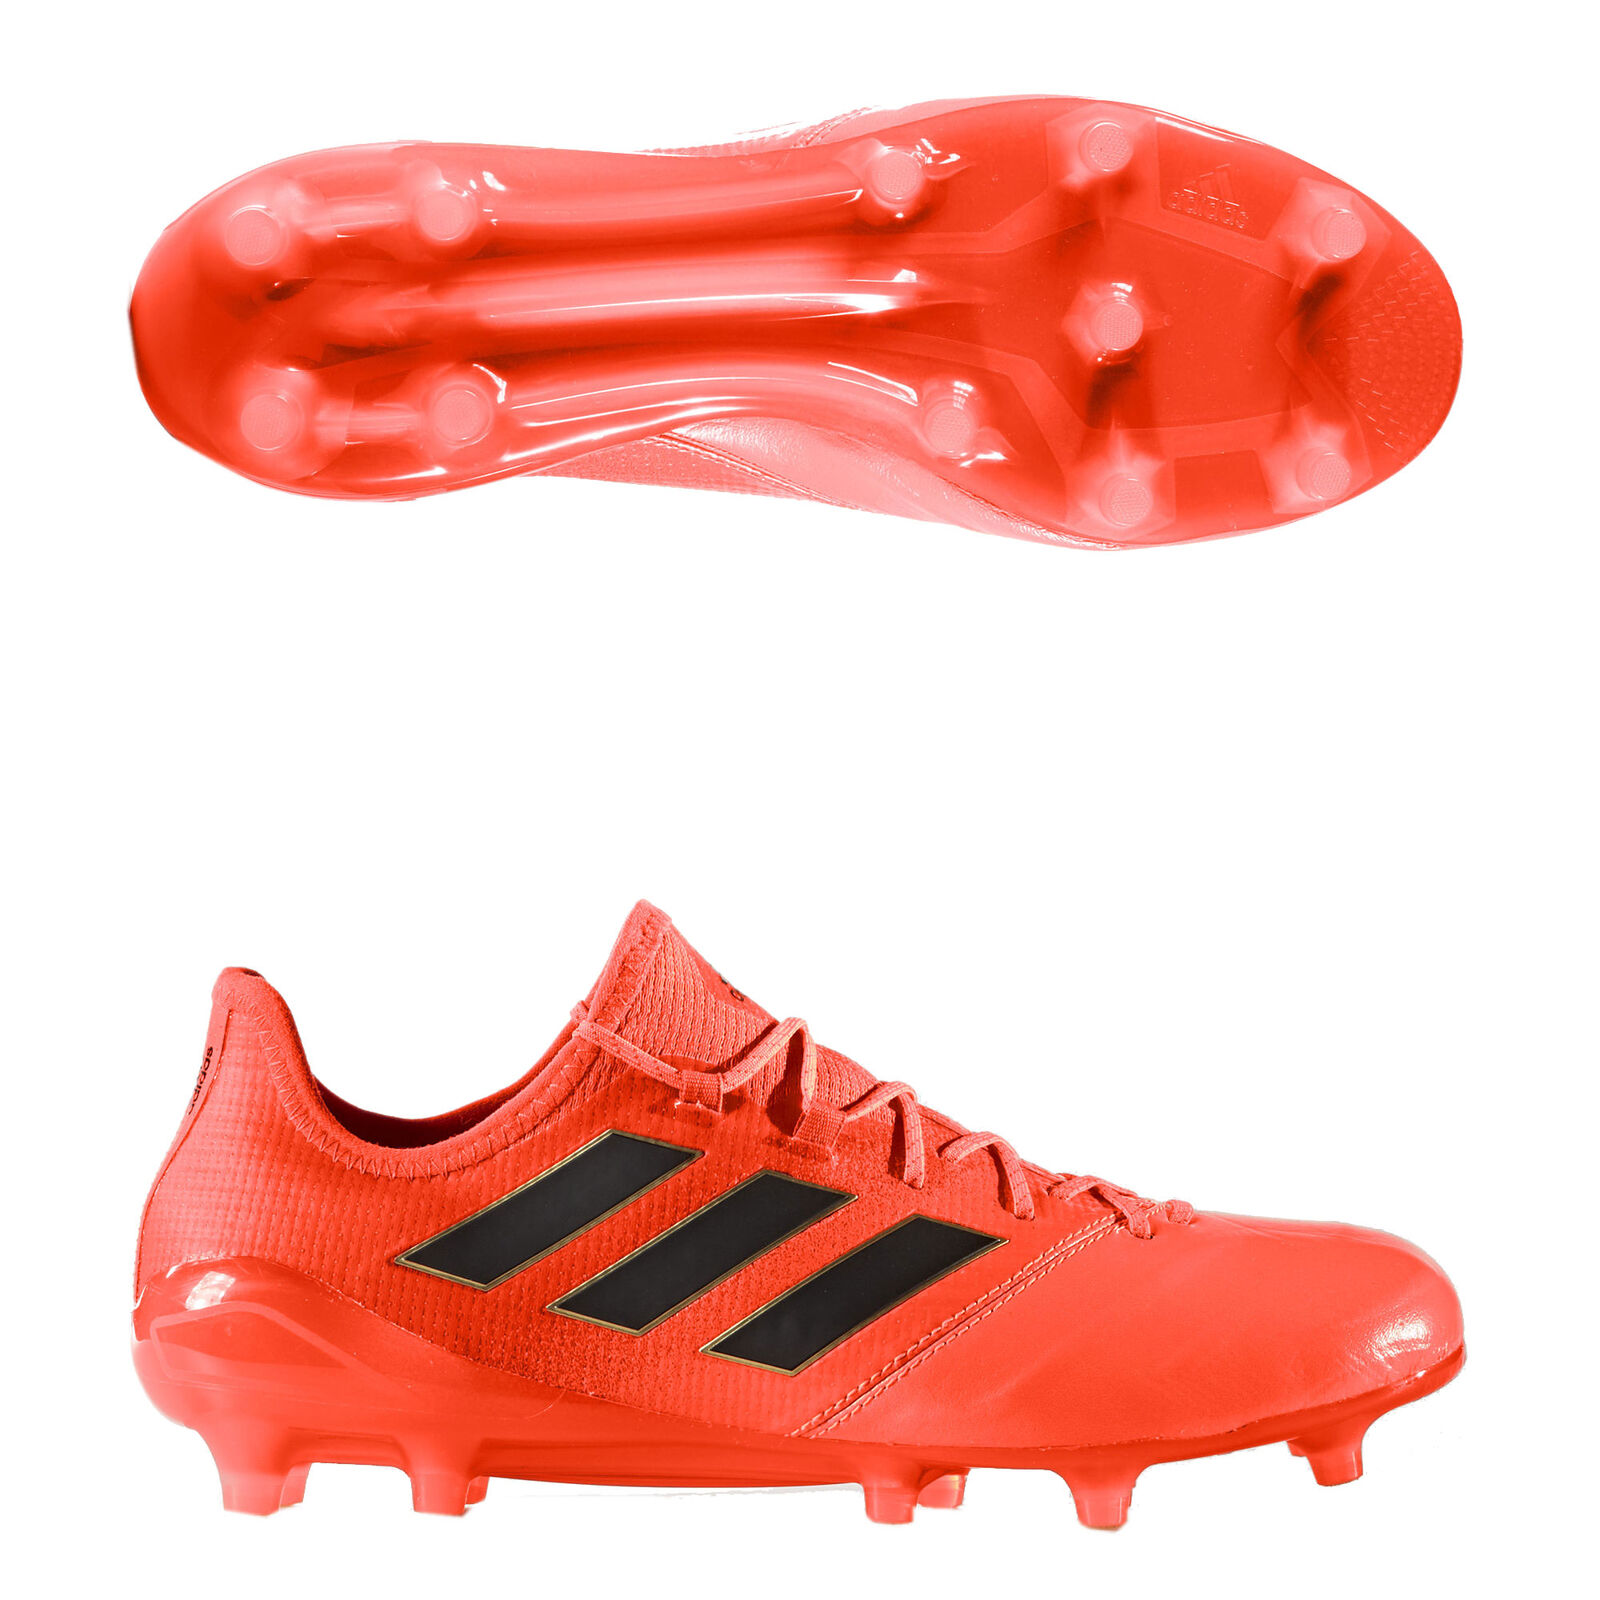 Adidas Ace 17.1 Leather FG S77043